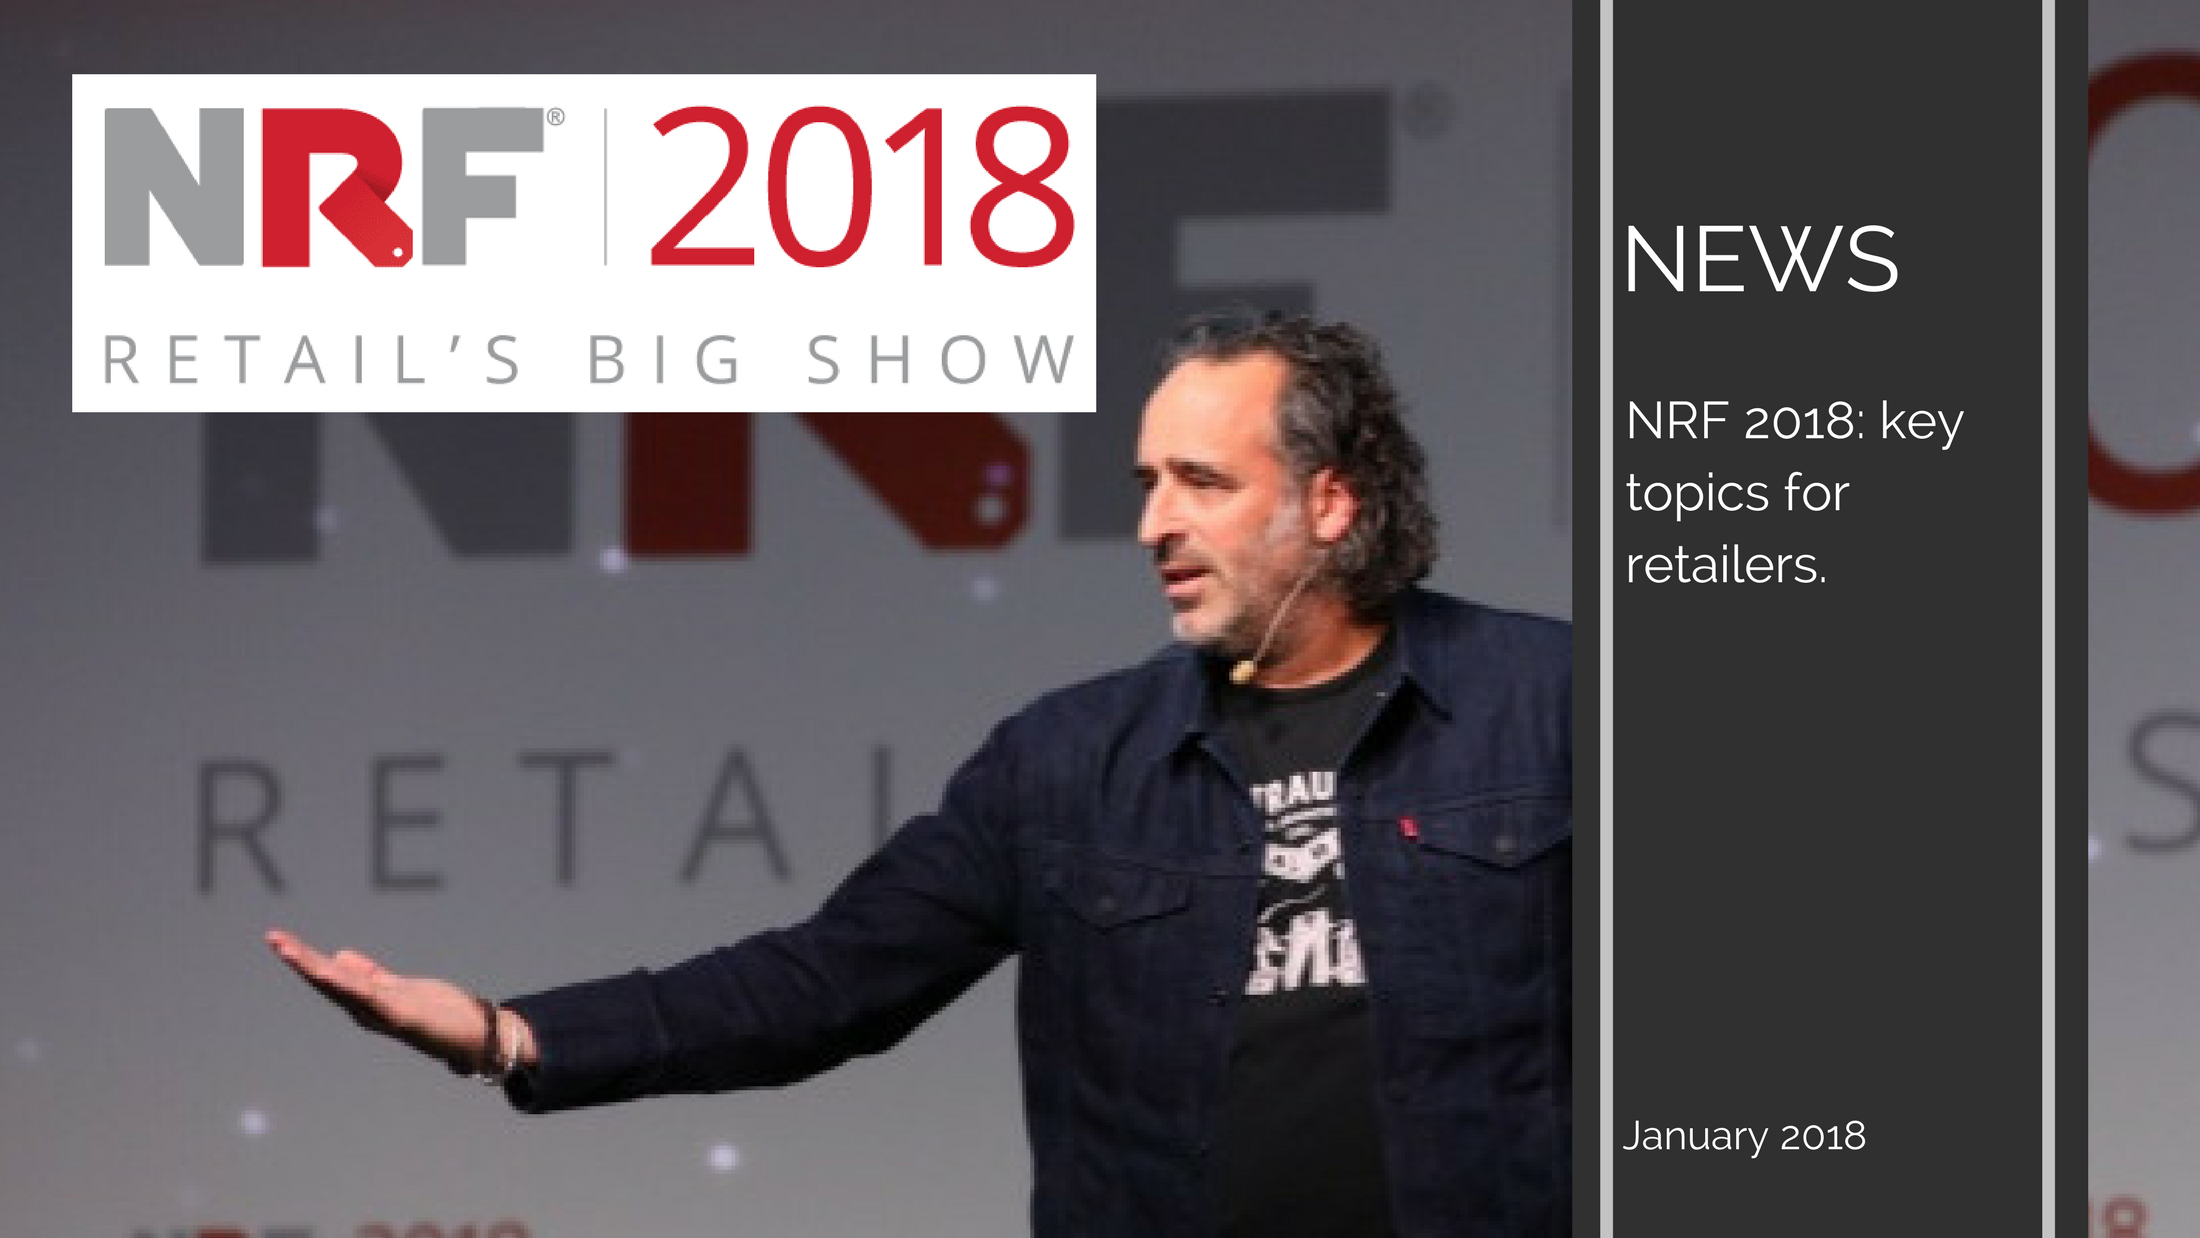 Trends News 24 - NRF 2018: key topics for retailers